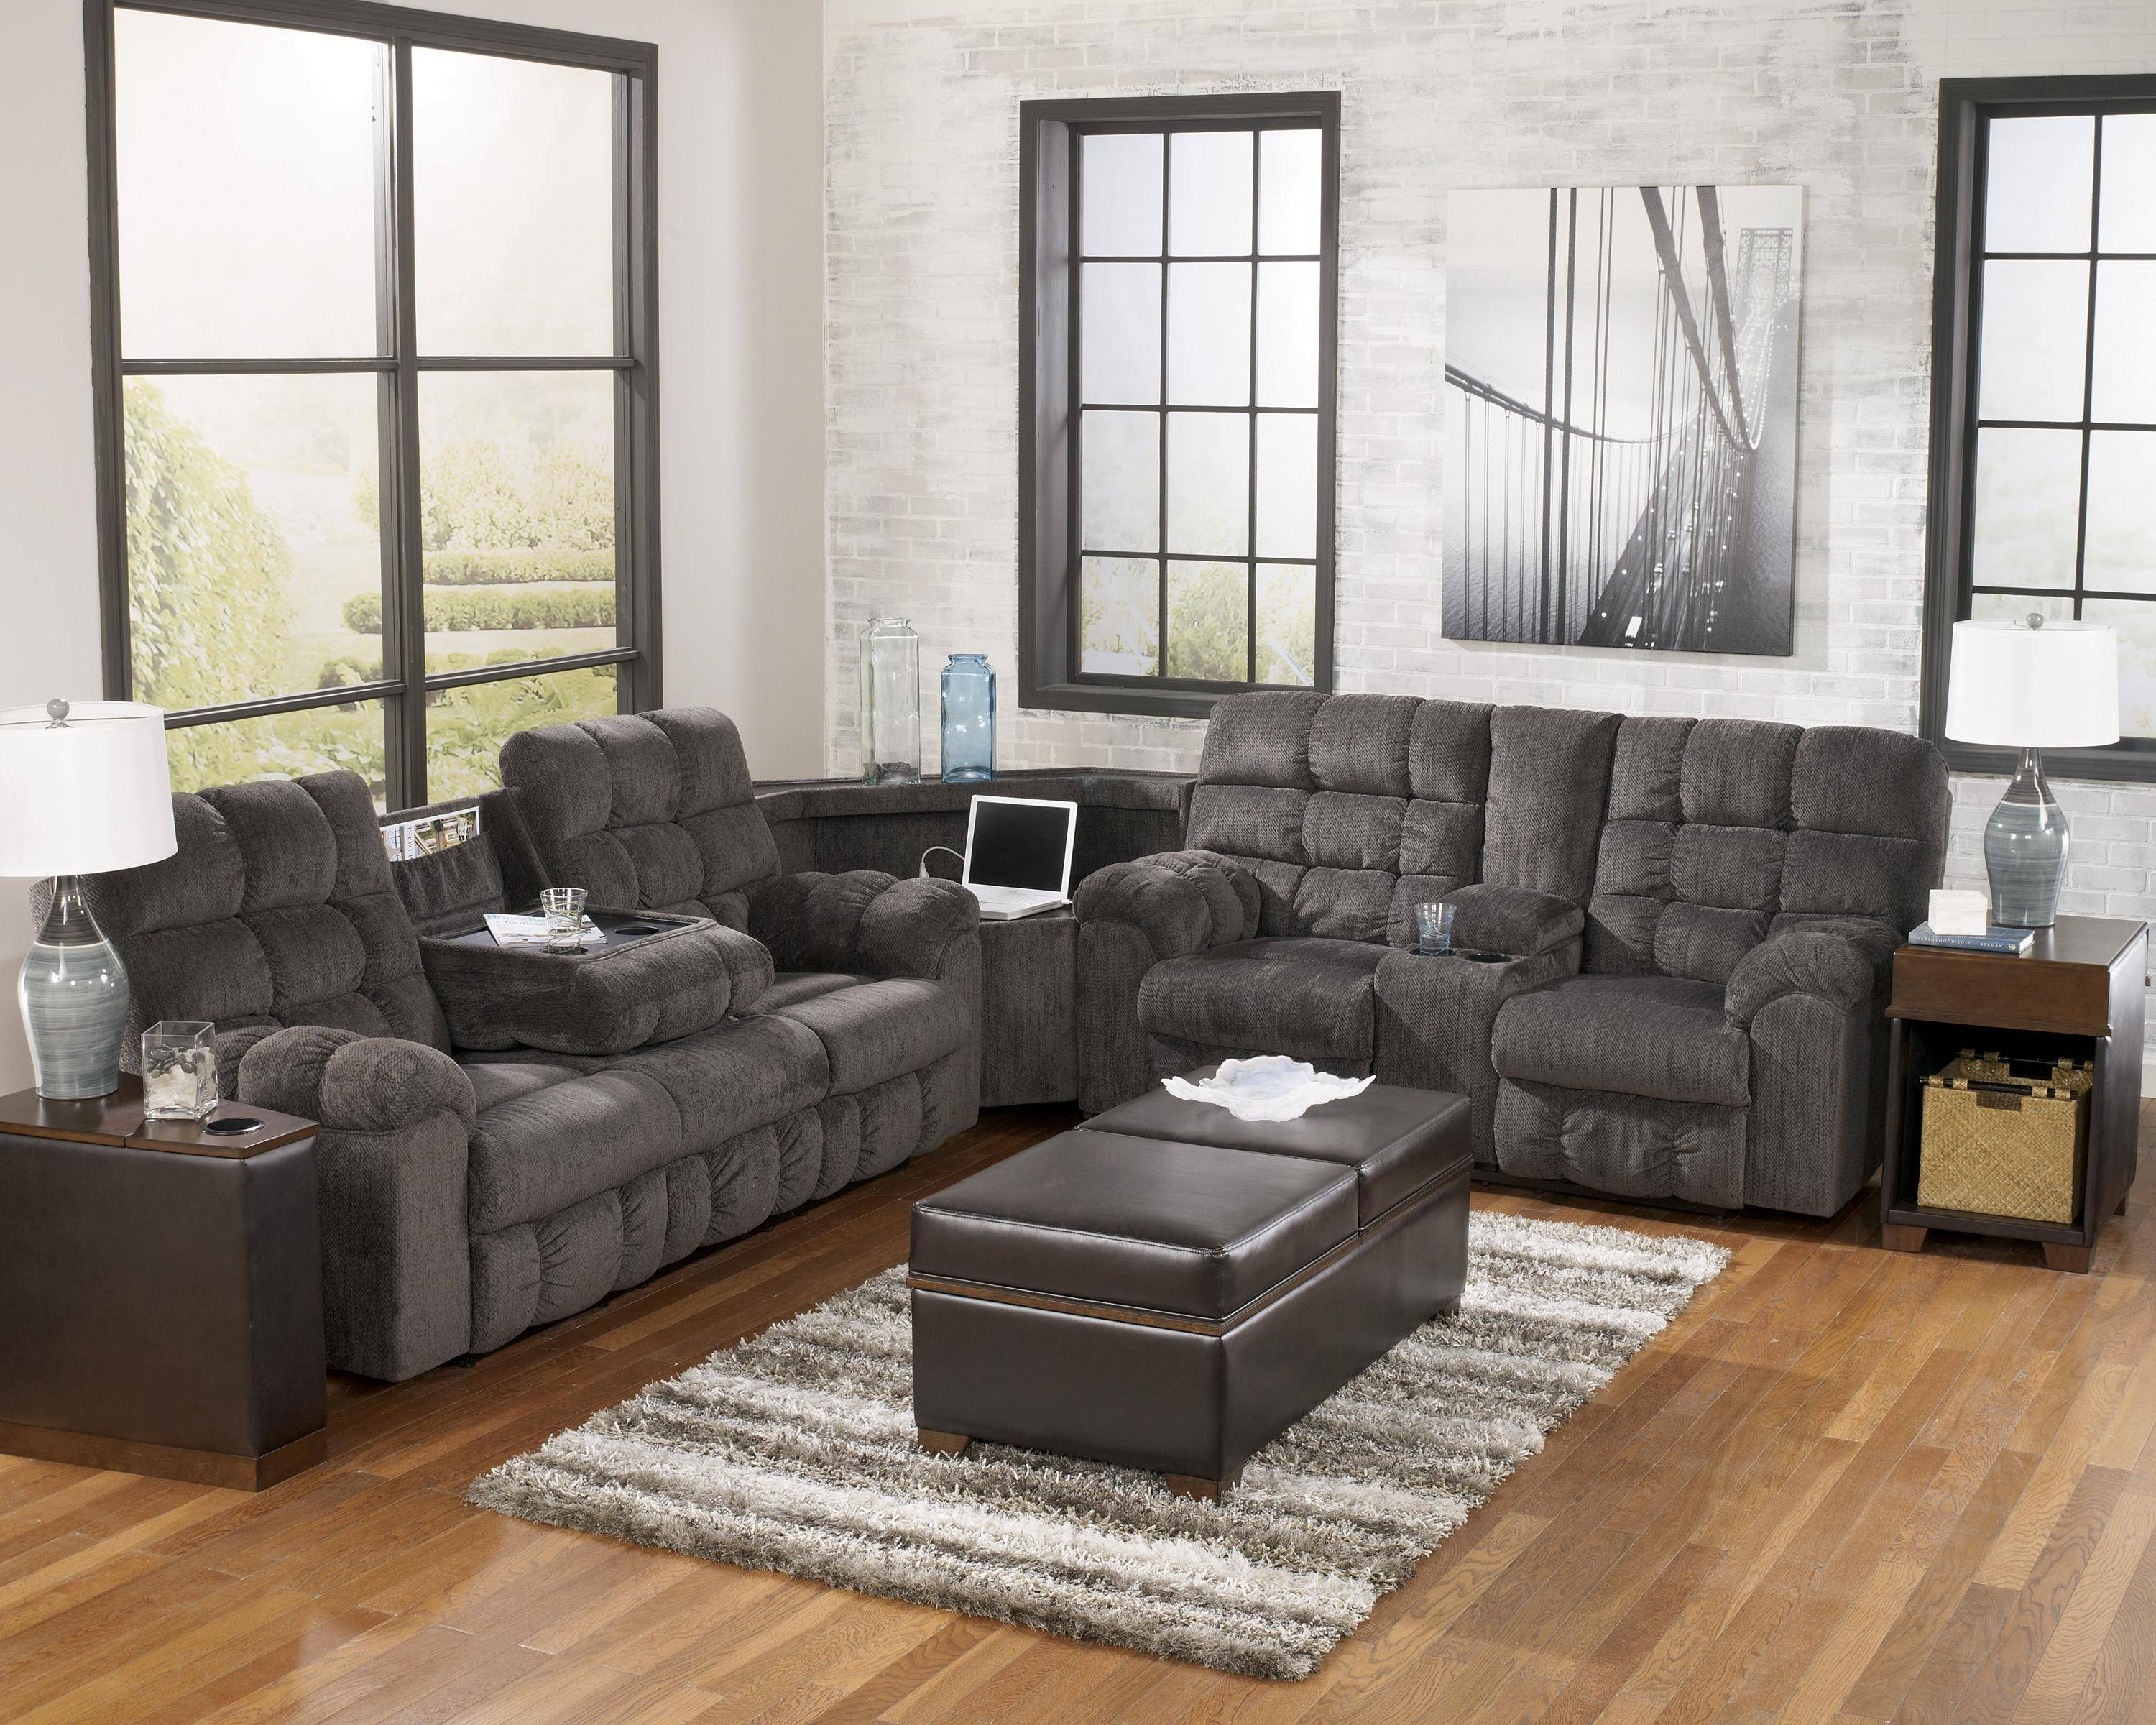 Sofa Ideas: Ashley Furniture Brown Corduroy Sectional Sofas regarding Ashley Furniture Corduroy Sectional Sofas (Image 14 of 15)